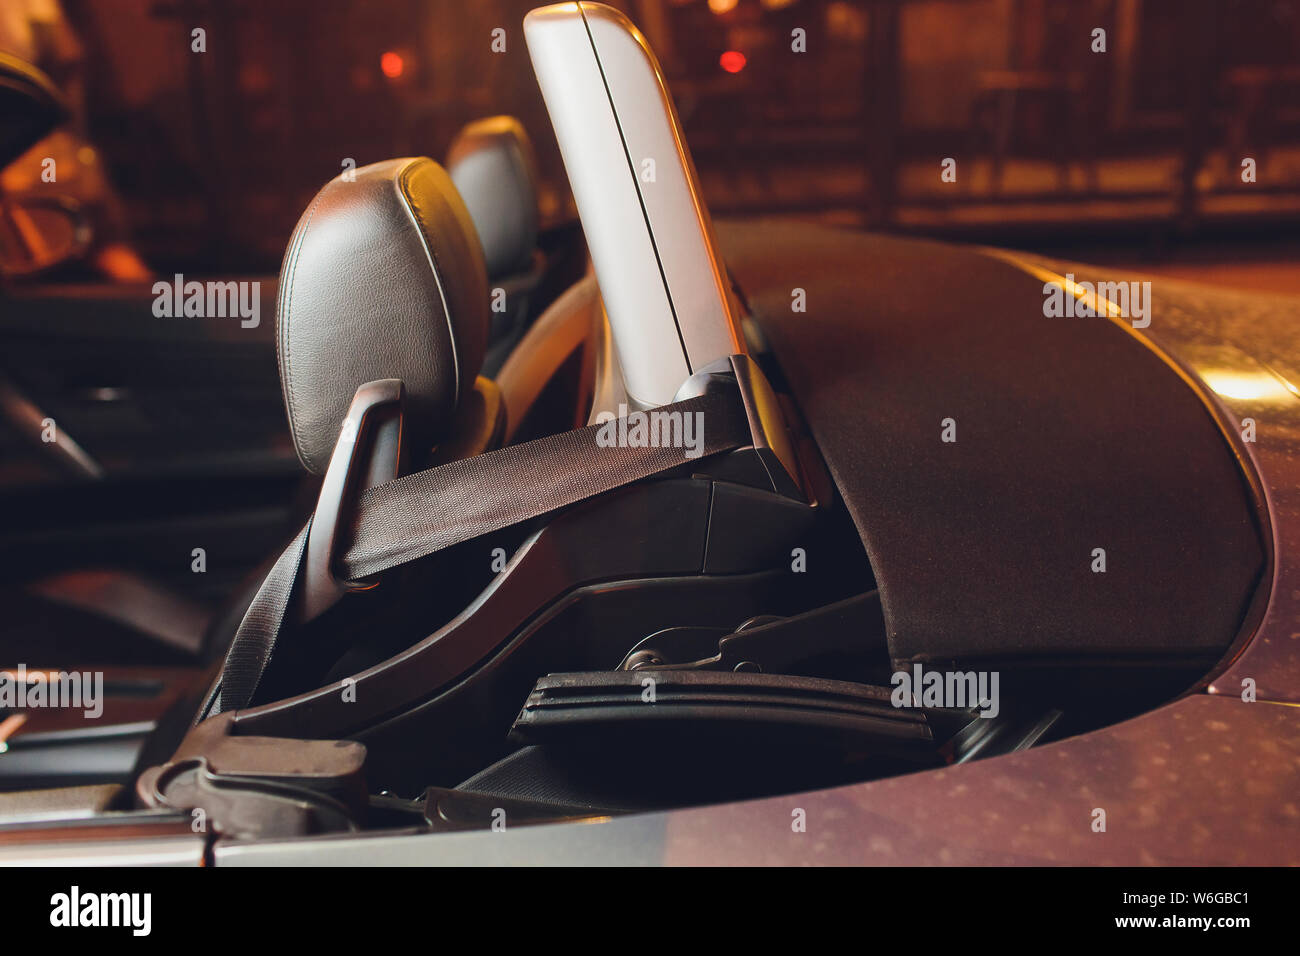 Convertible car's system with soft top closing opening. Stock Photo